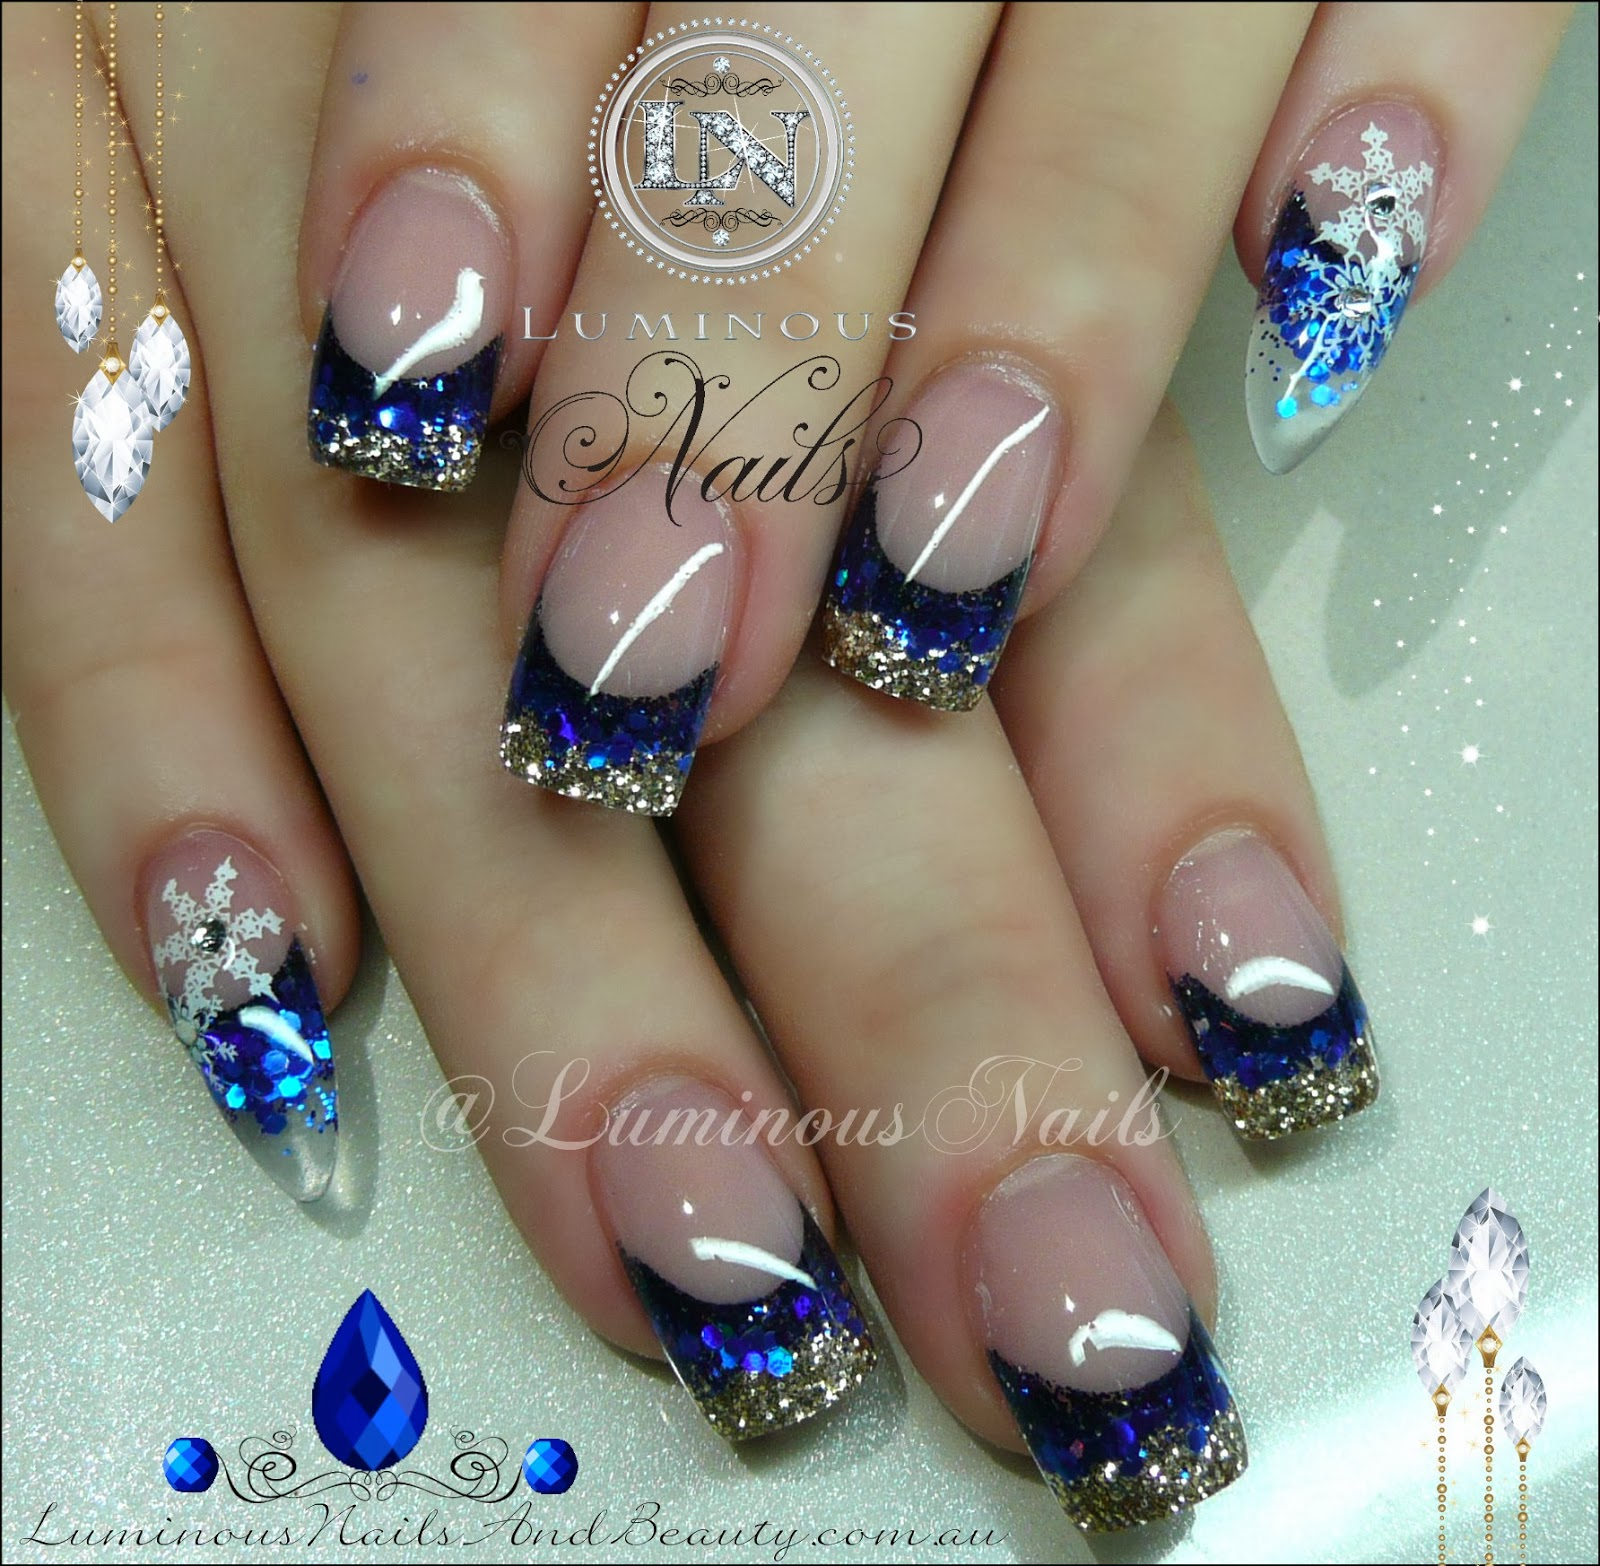 Blue & Gold Nails With Snow Flakes